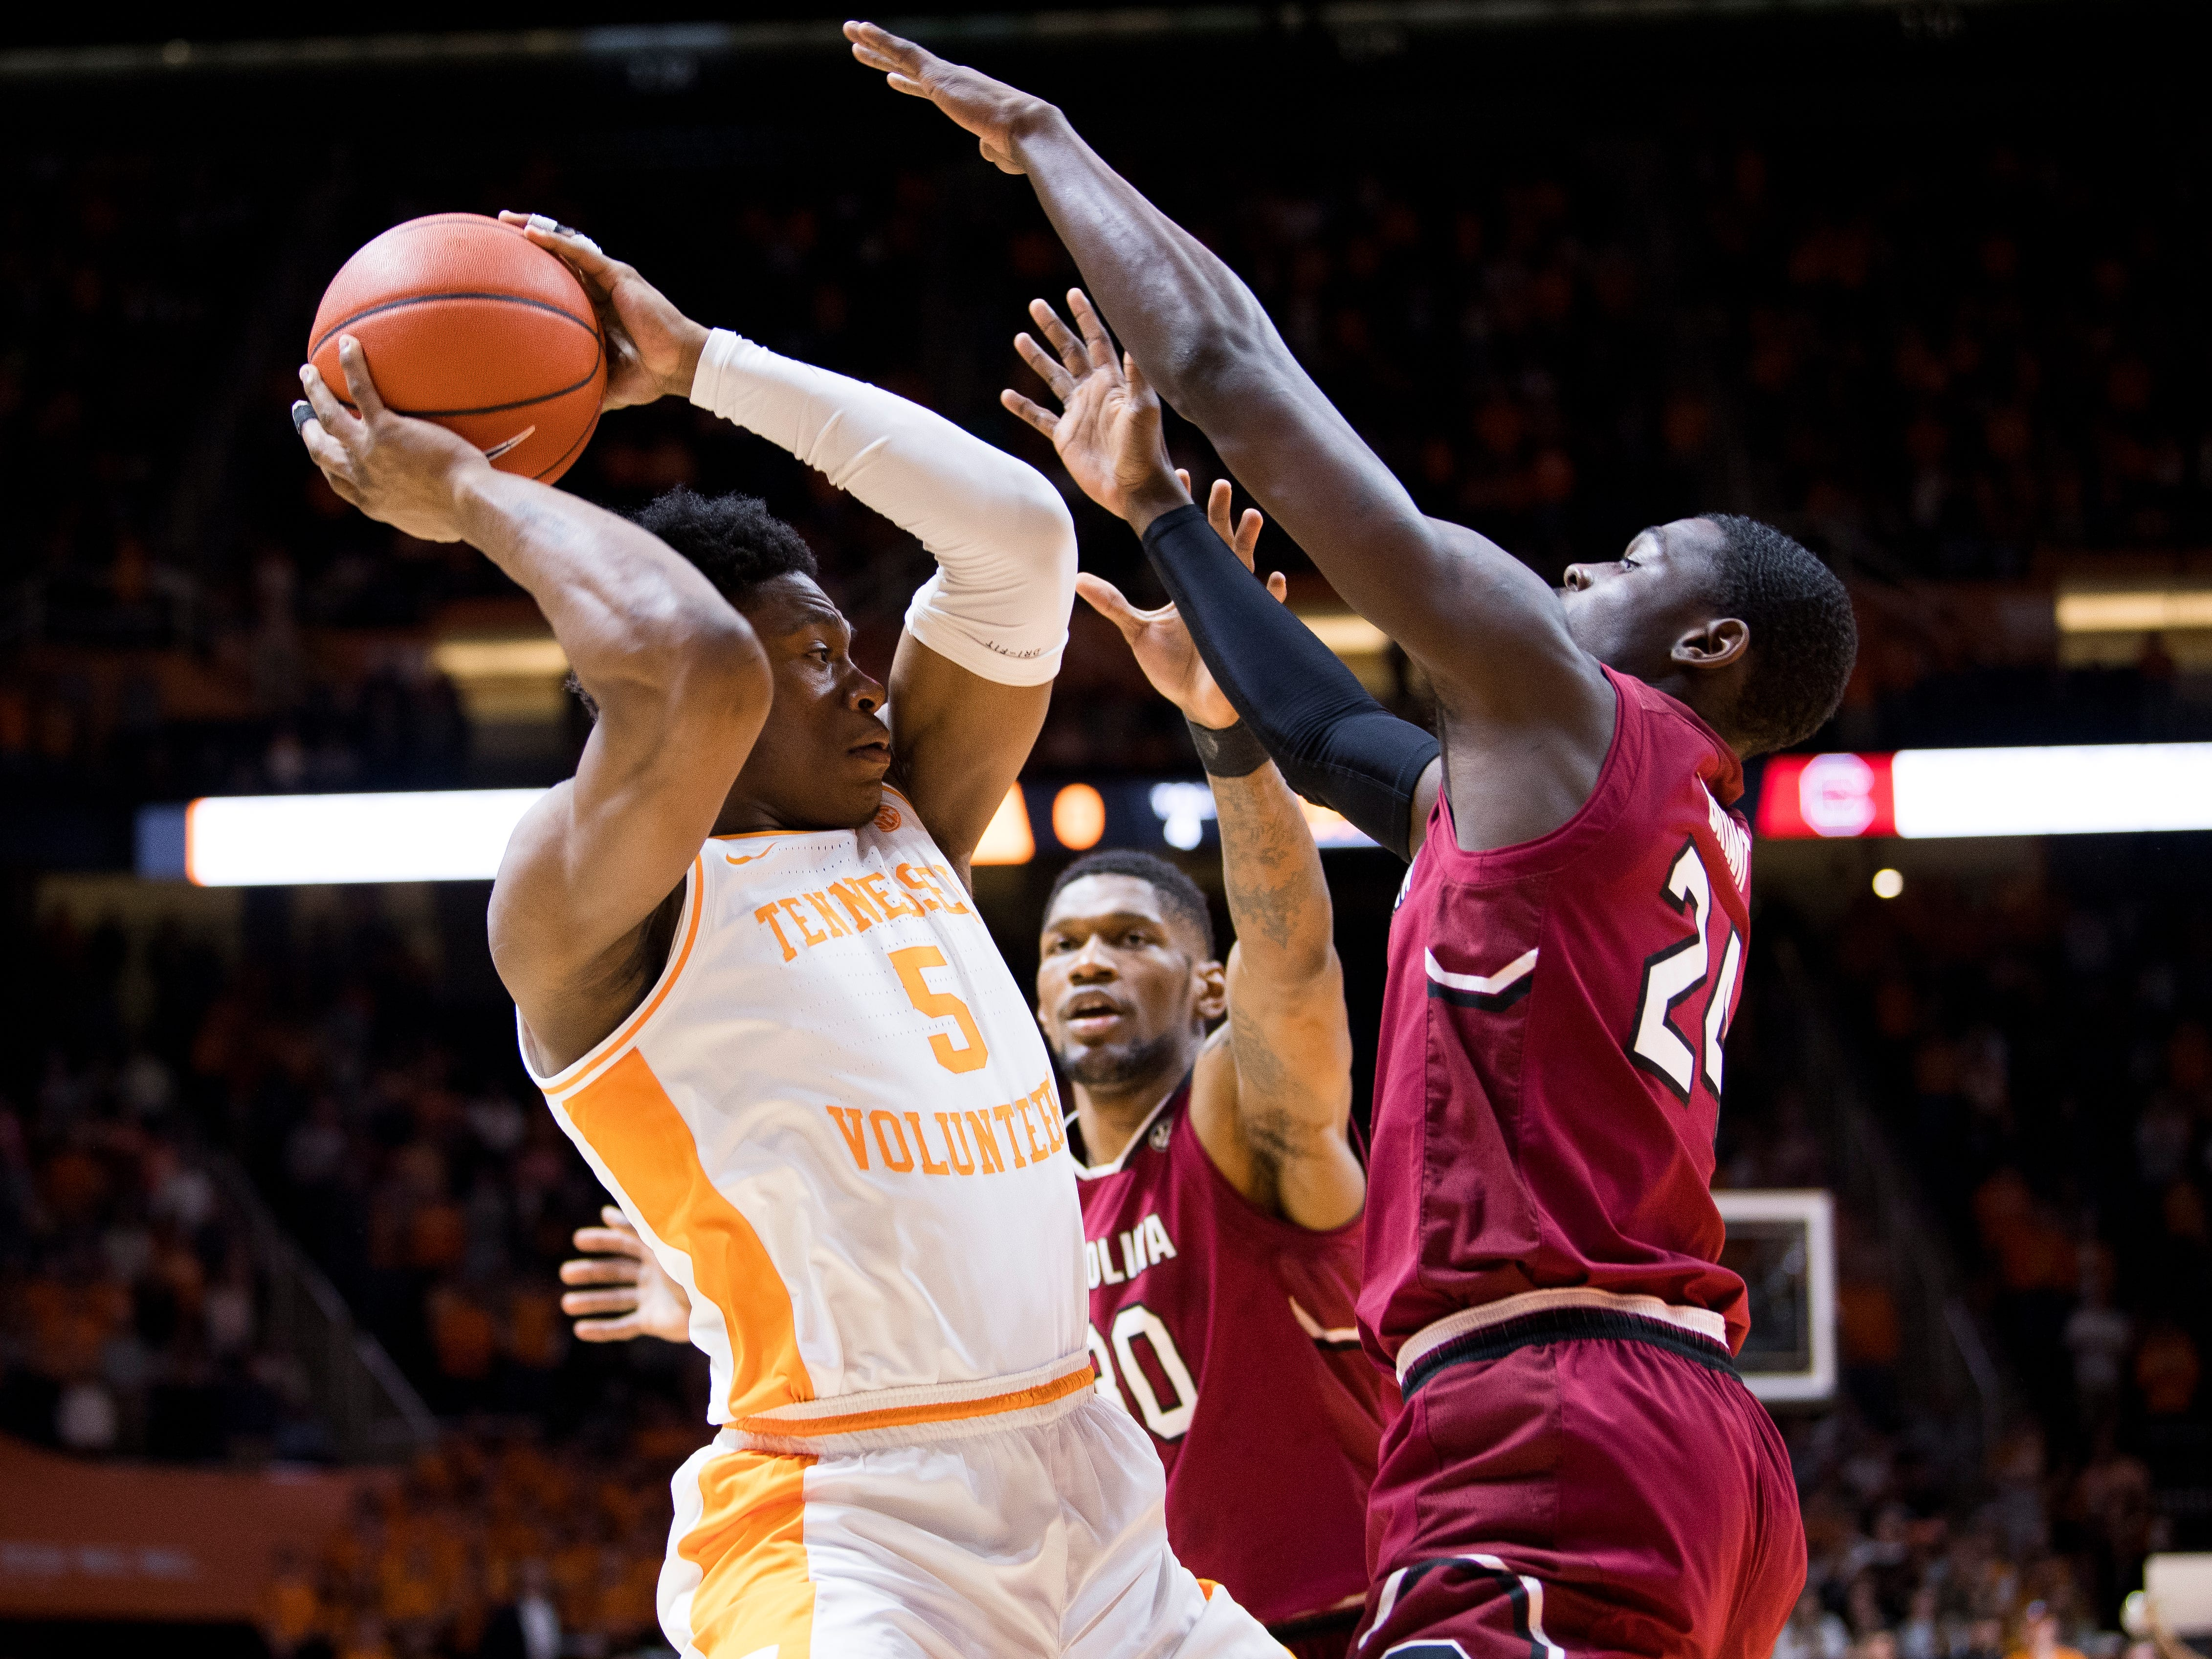 Tennessee guard Admiral Schofield (5) moves past South Carolina forward Keyshawn Bryant (24) and South Carolina forward Chris Silva (30) during Tennessee's home SEC game against South Carolina at Thompson-Boling Arena in Knoxville on Wednesday, February 13, 2019.